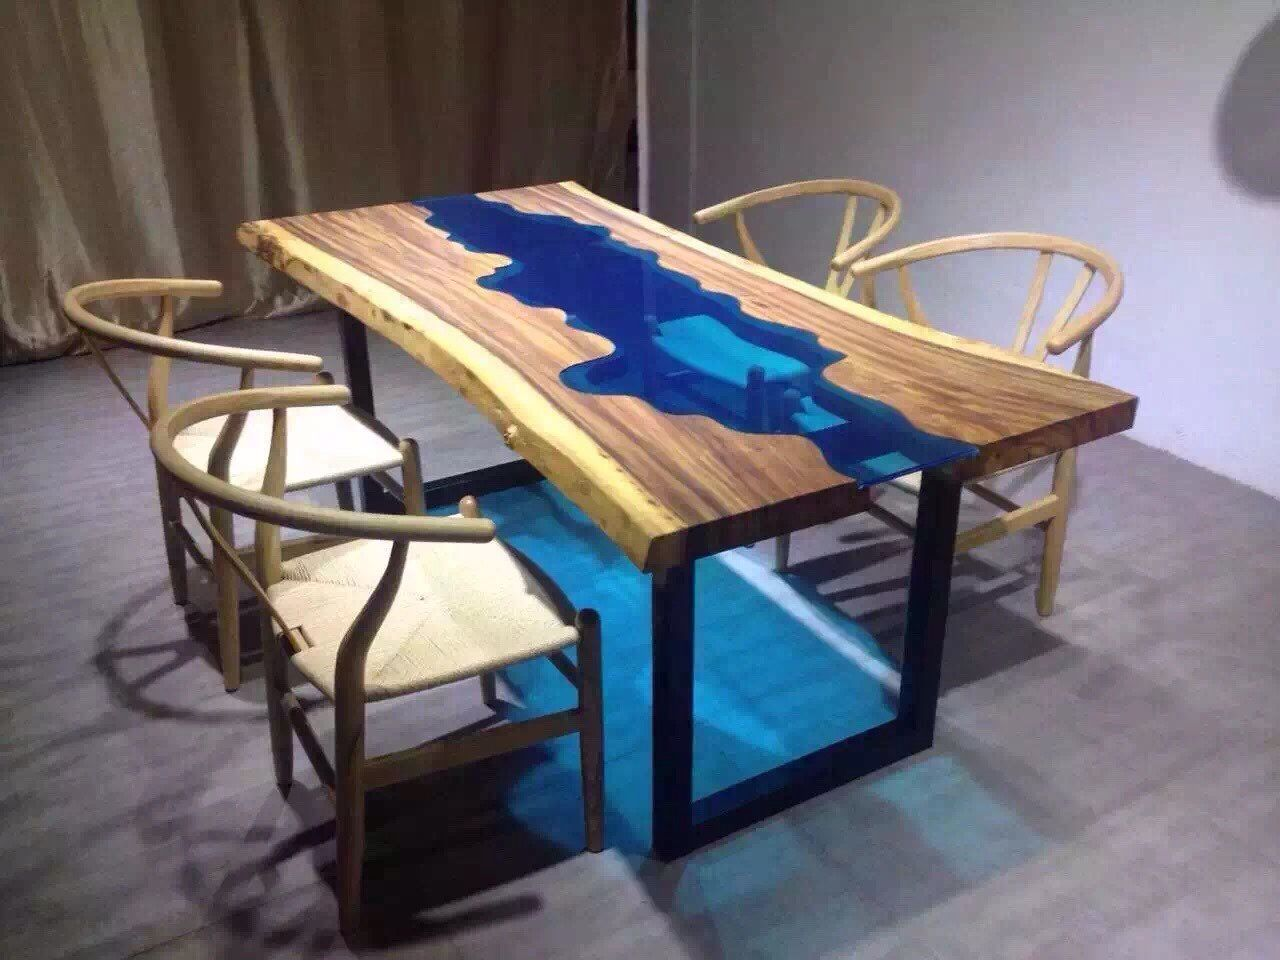 Custom made acacia live edge river wood and glass dining for Wooden glass dining table designs